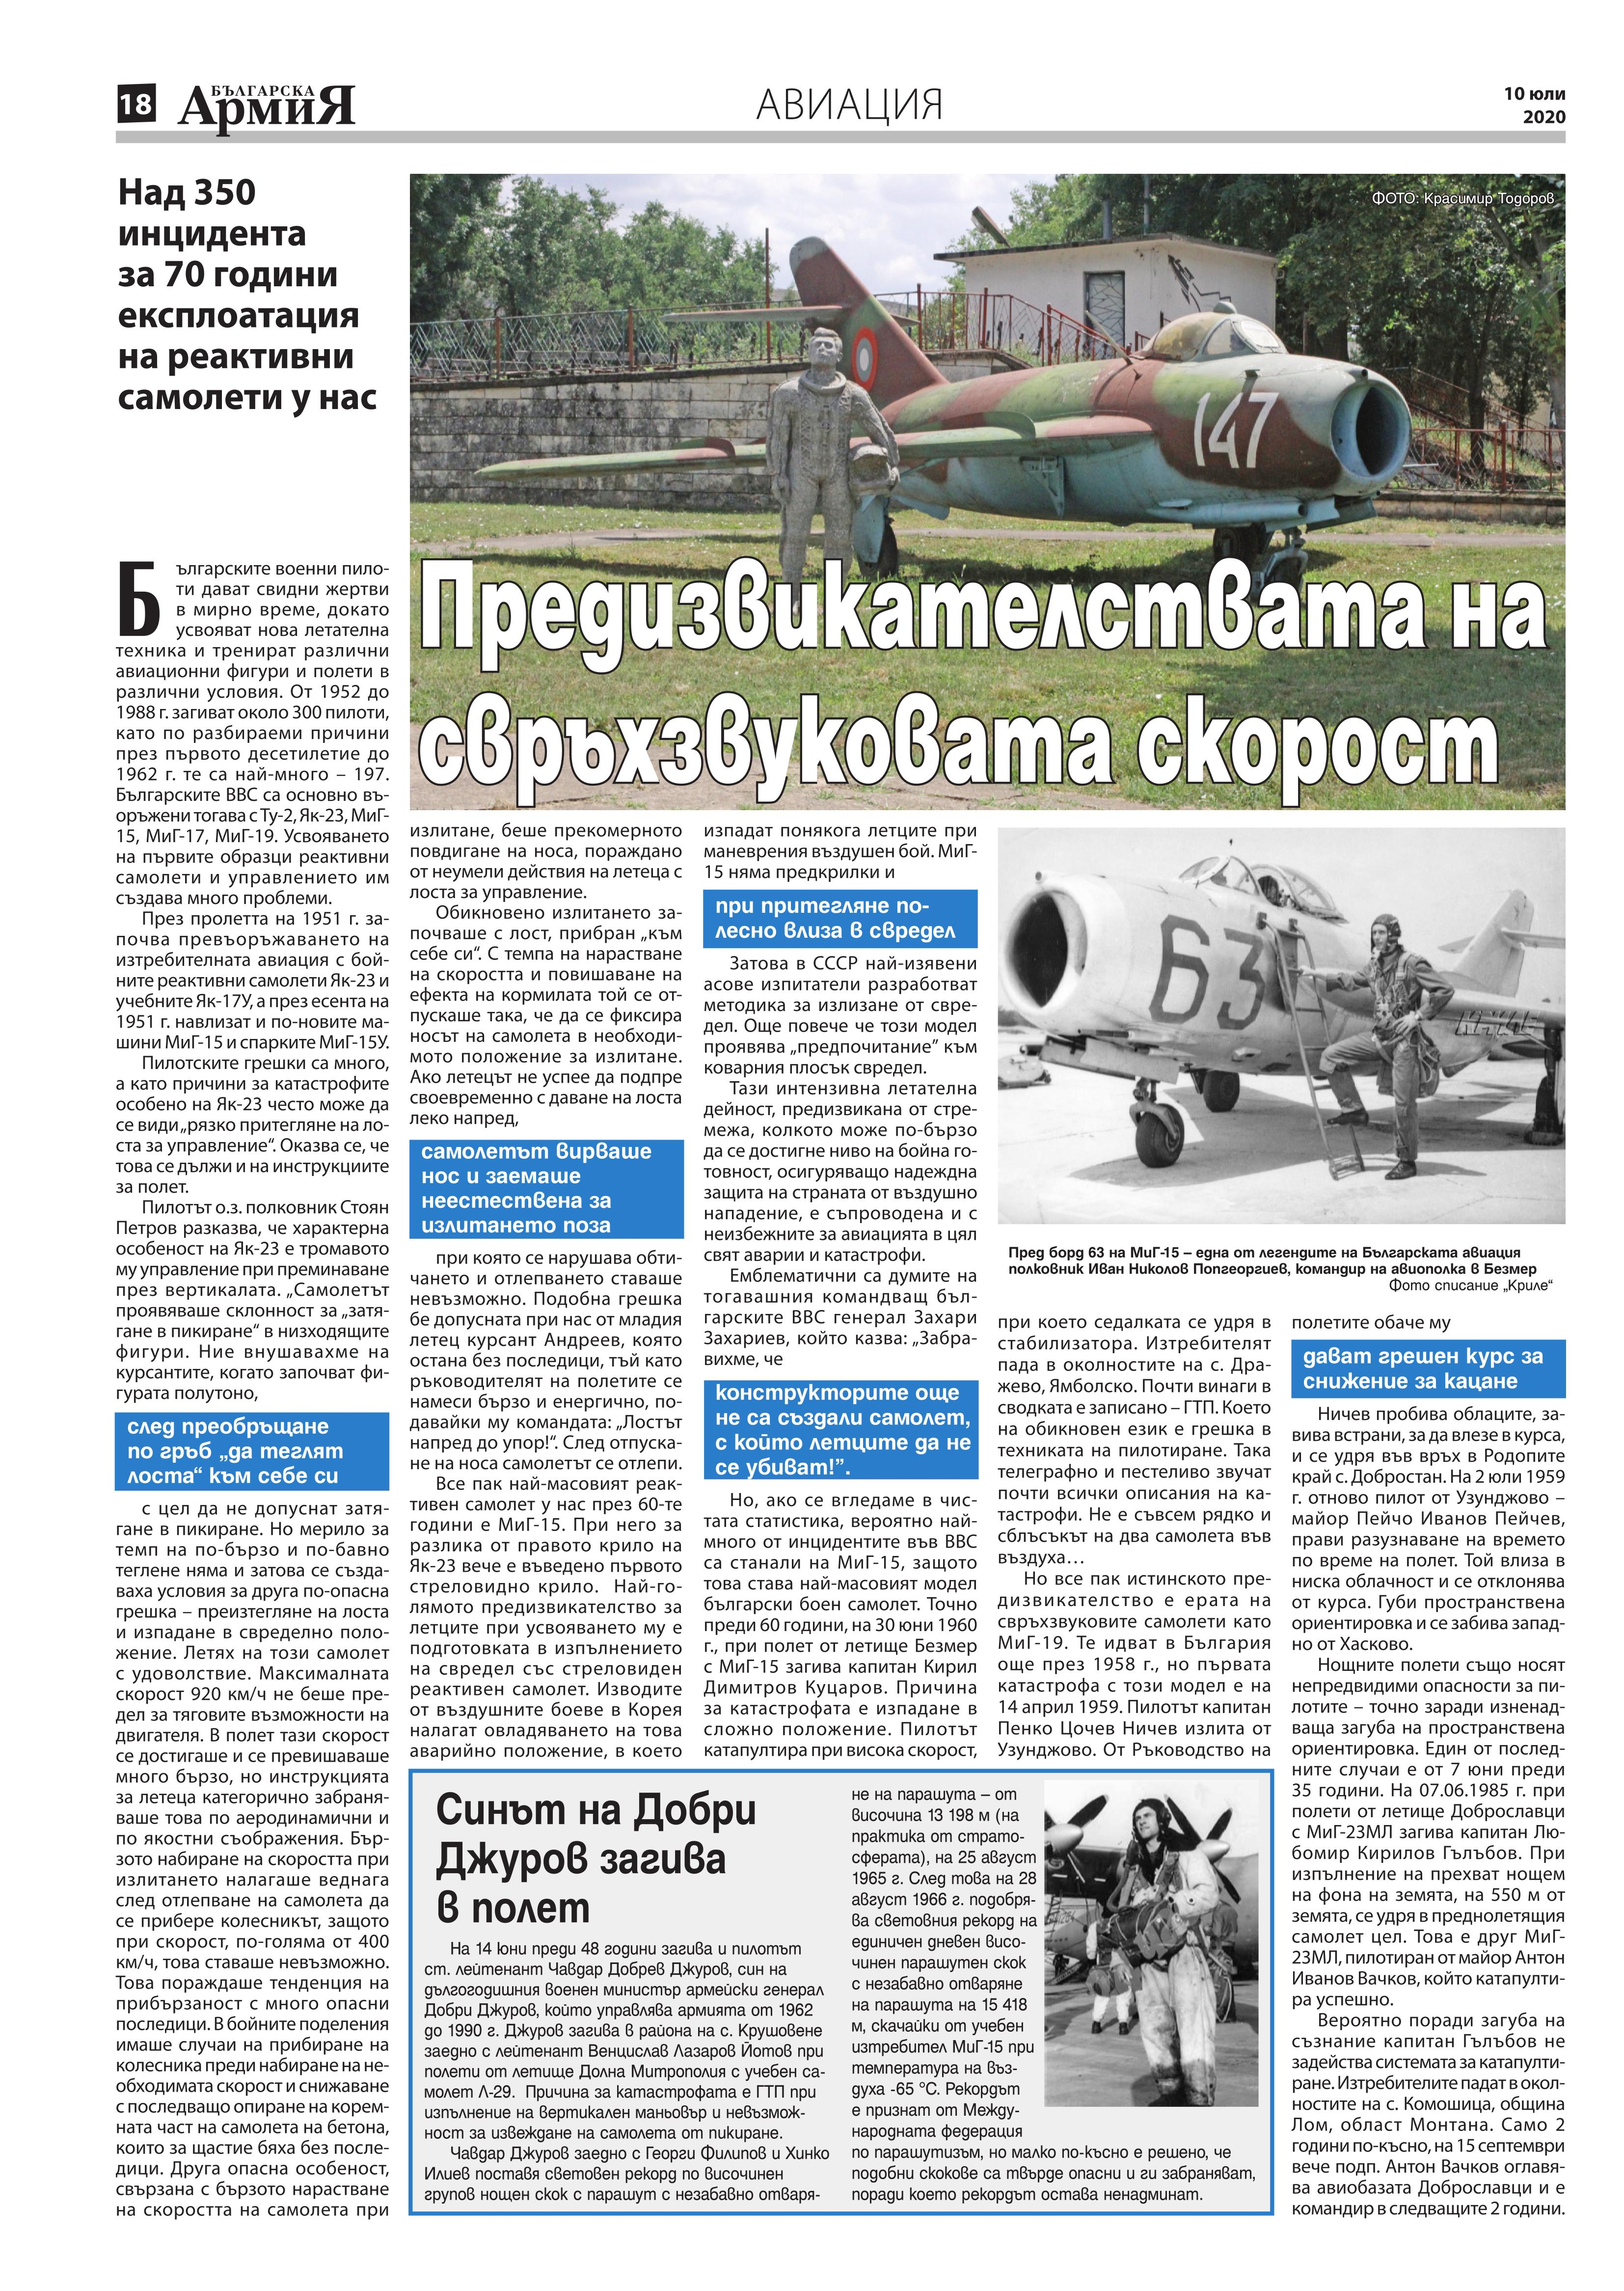 https://armymedia.bg/wp-content/uploads/2015/06/18.page1_-146.jpg